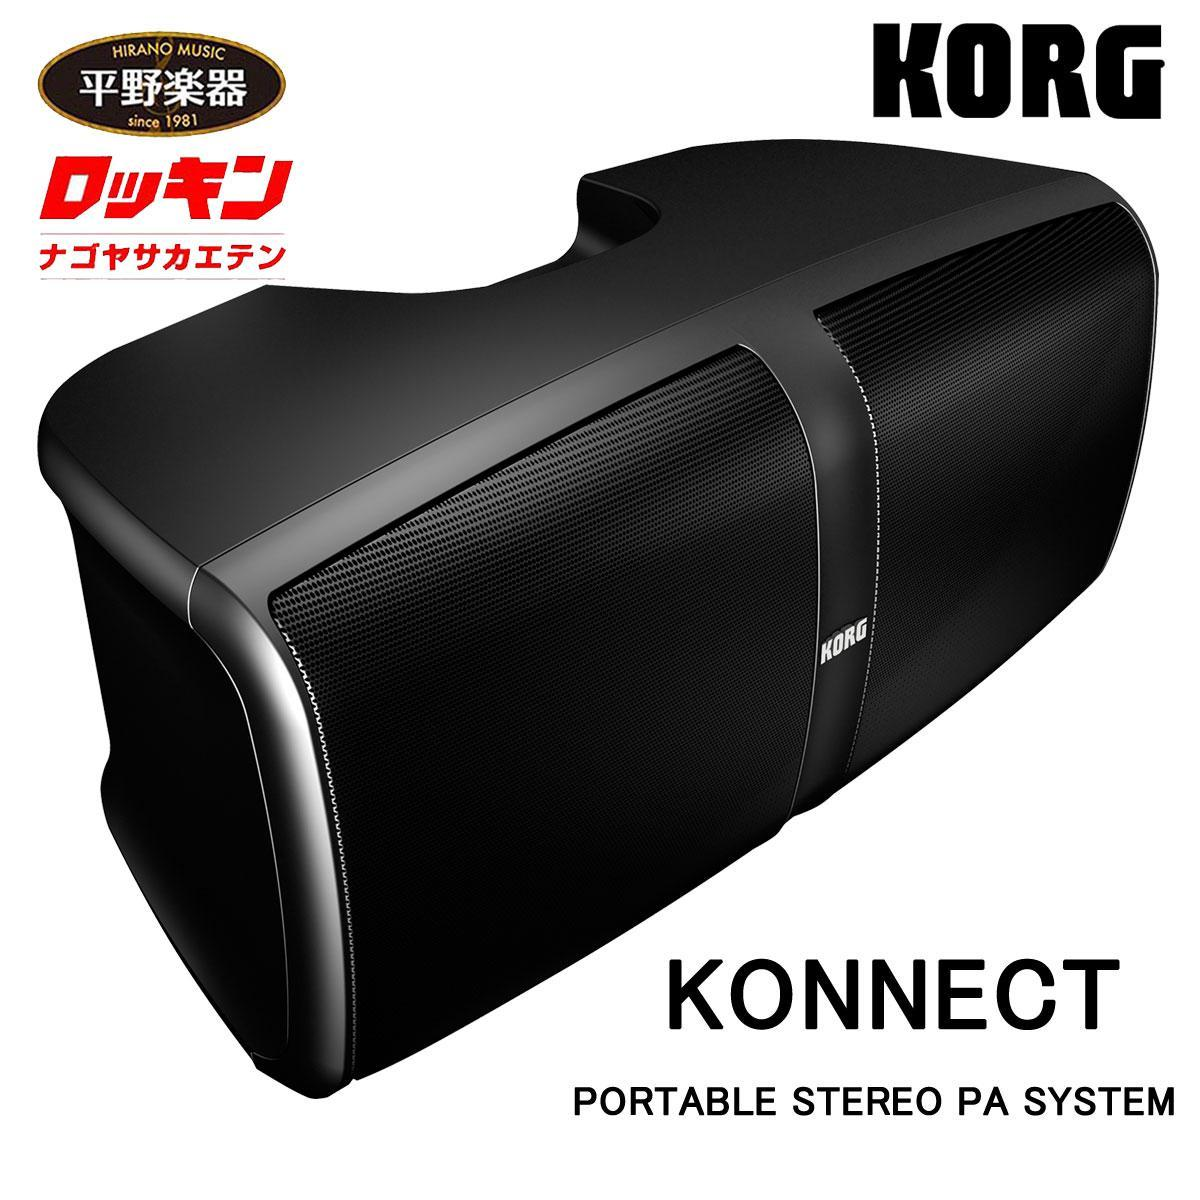 KORG KONNECT [portable stereo PA system]